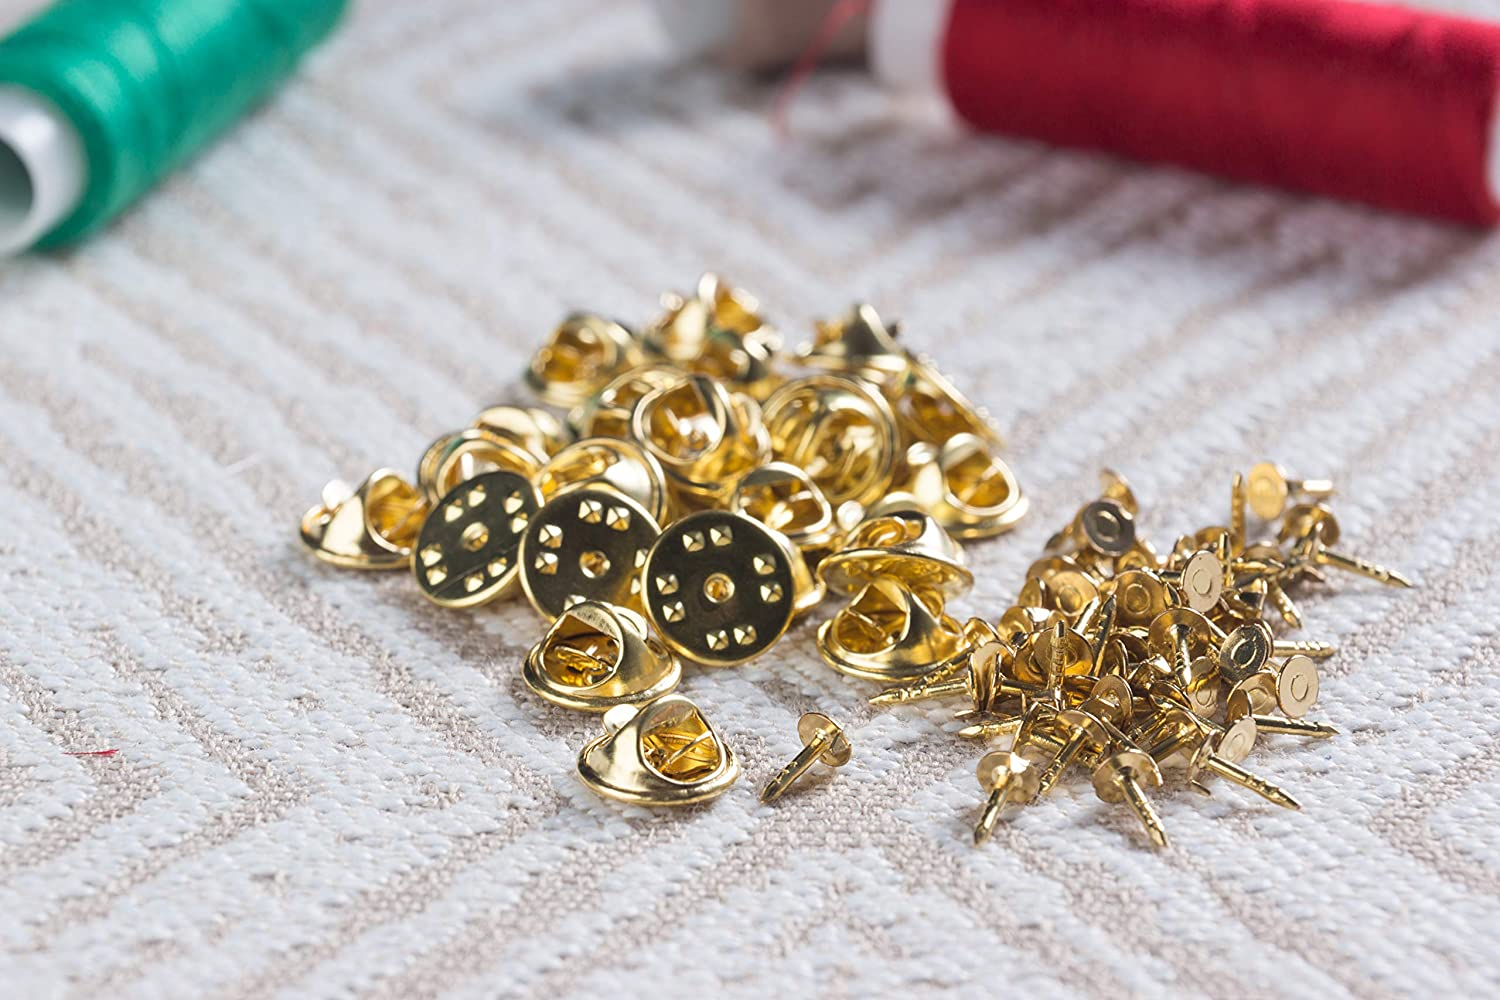 Pin Backs Lapel Pin Back Replacement Metal Tie Tacks 200-Pack Butterfly Clutch with Blank Pins Badge Insignia 0.43 Inches Diameter Gold